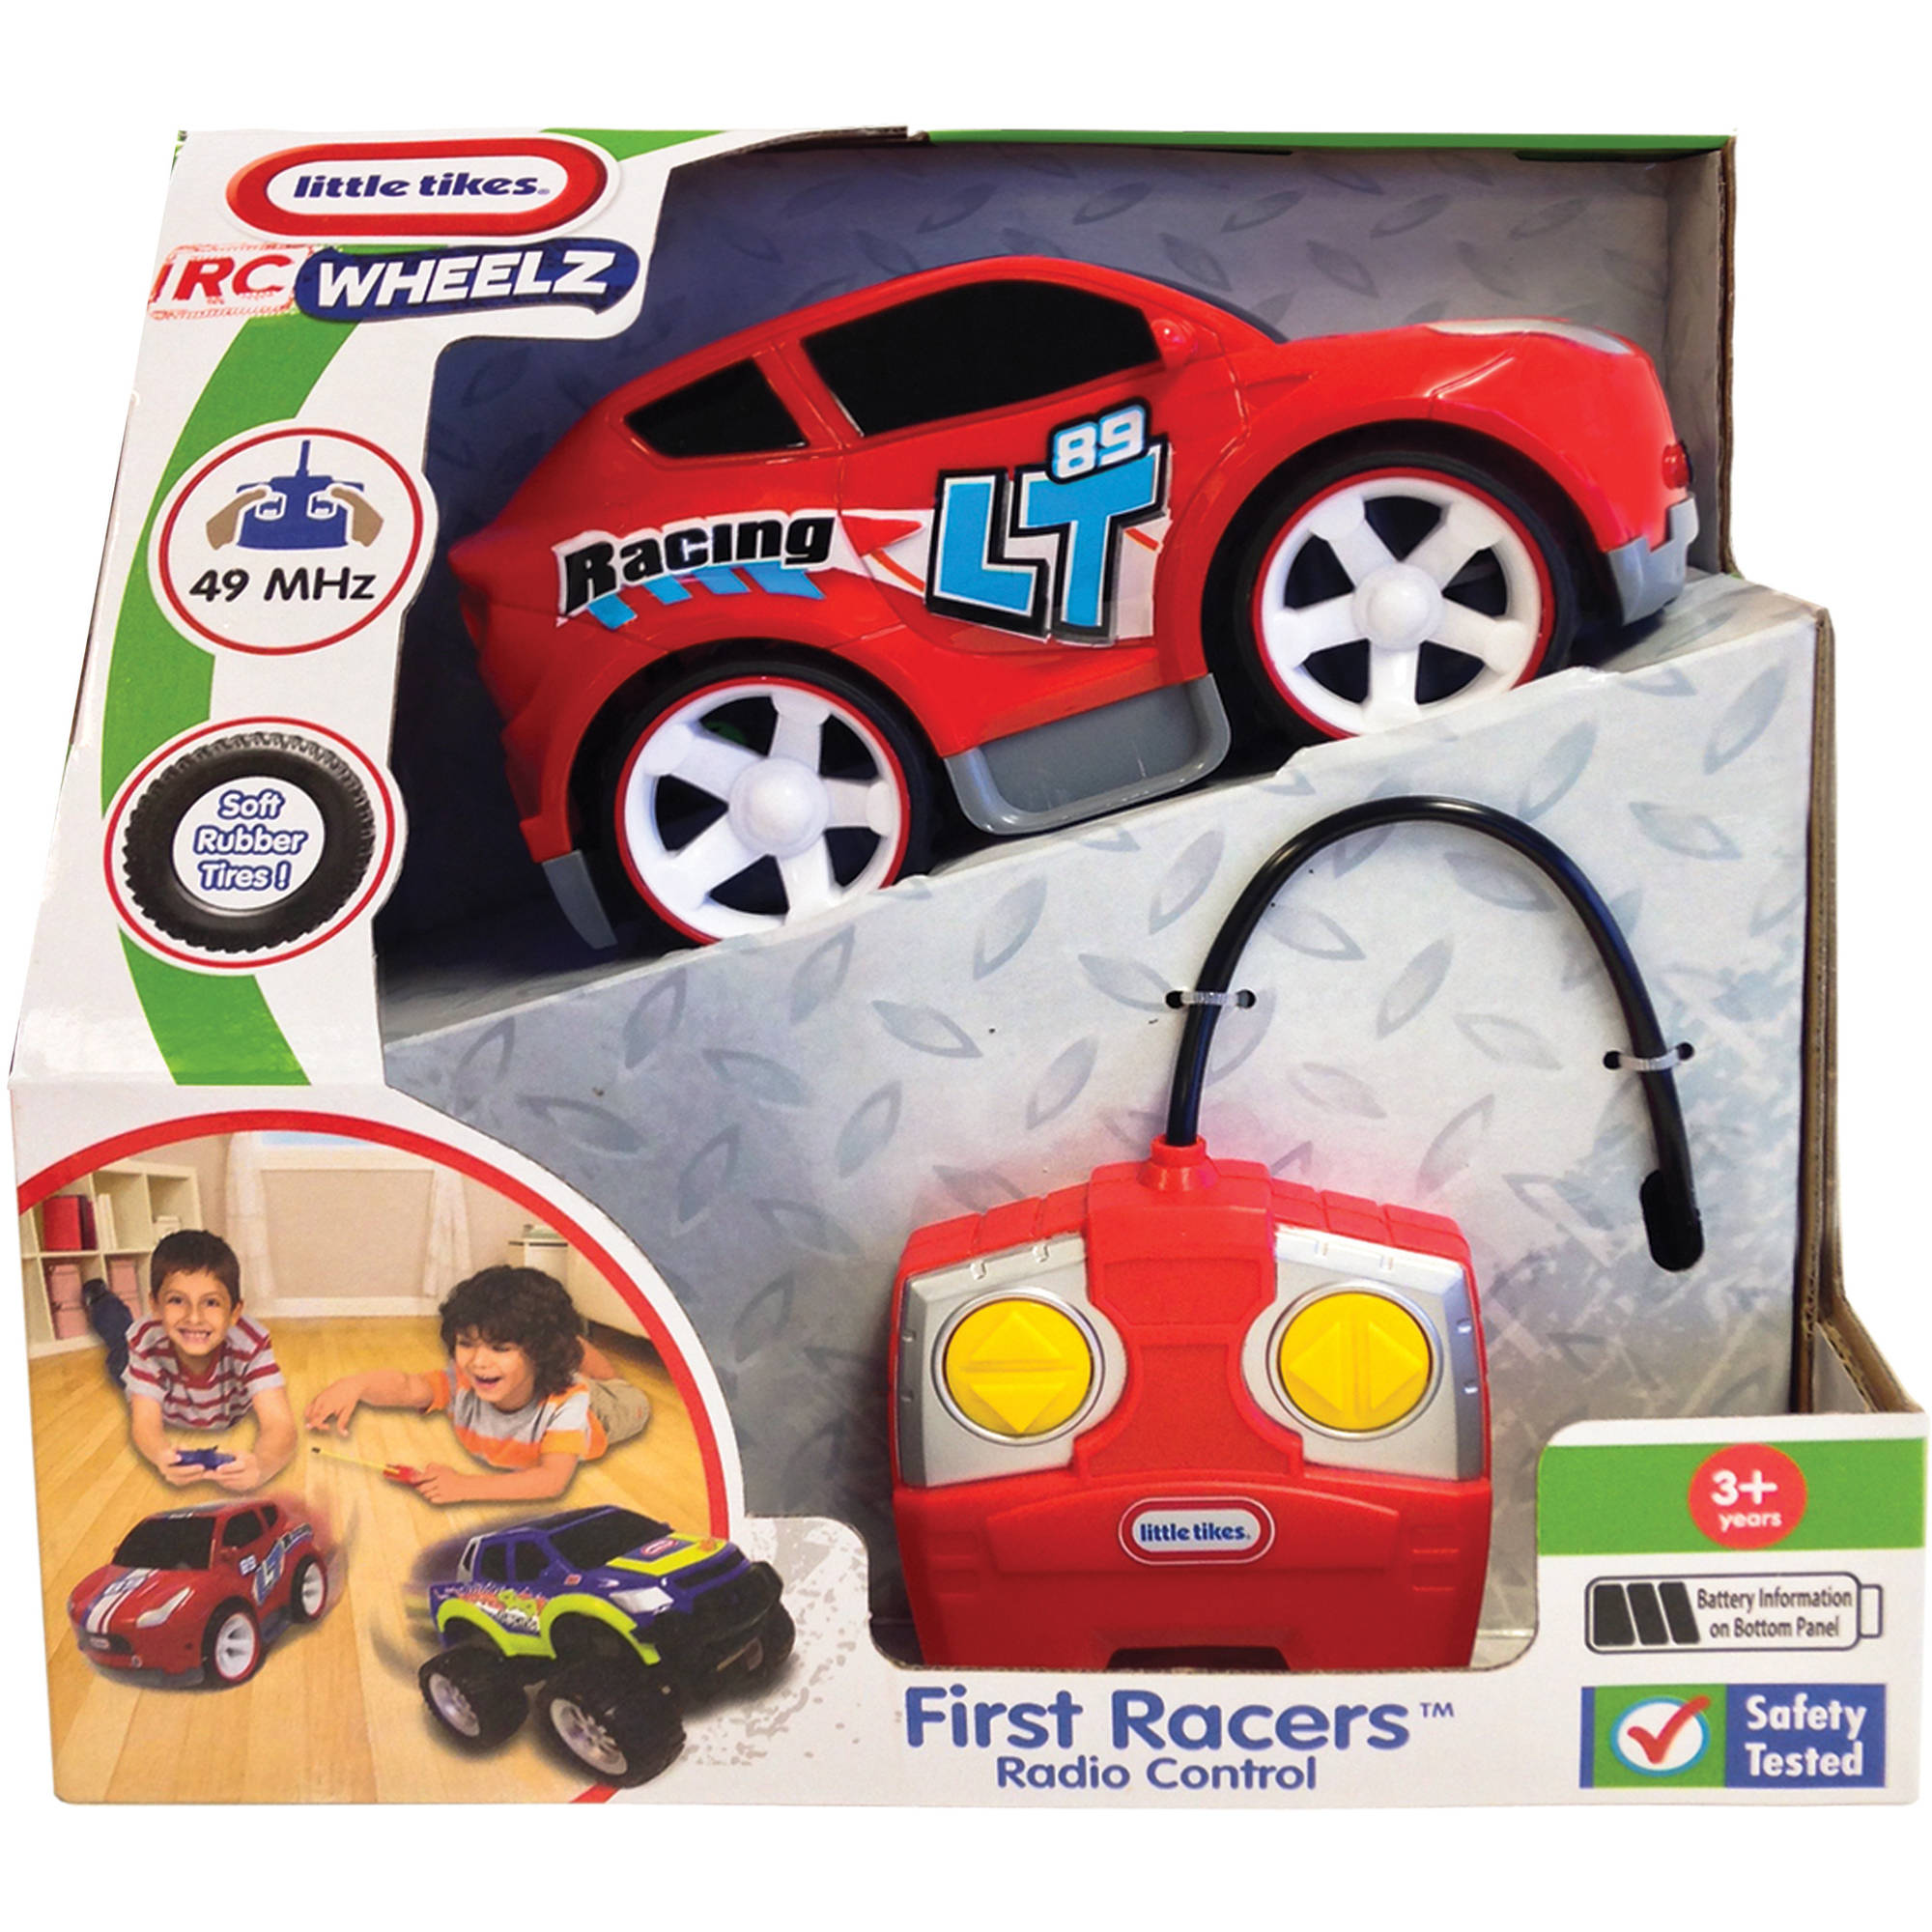 Little Tikes RC Wheelz First Racers Radio Controlled Car by Better Sourcing